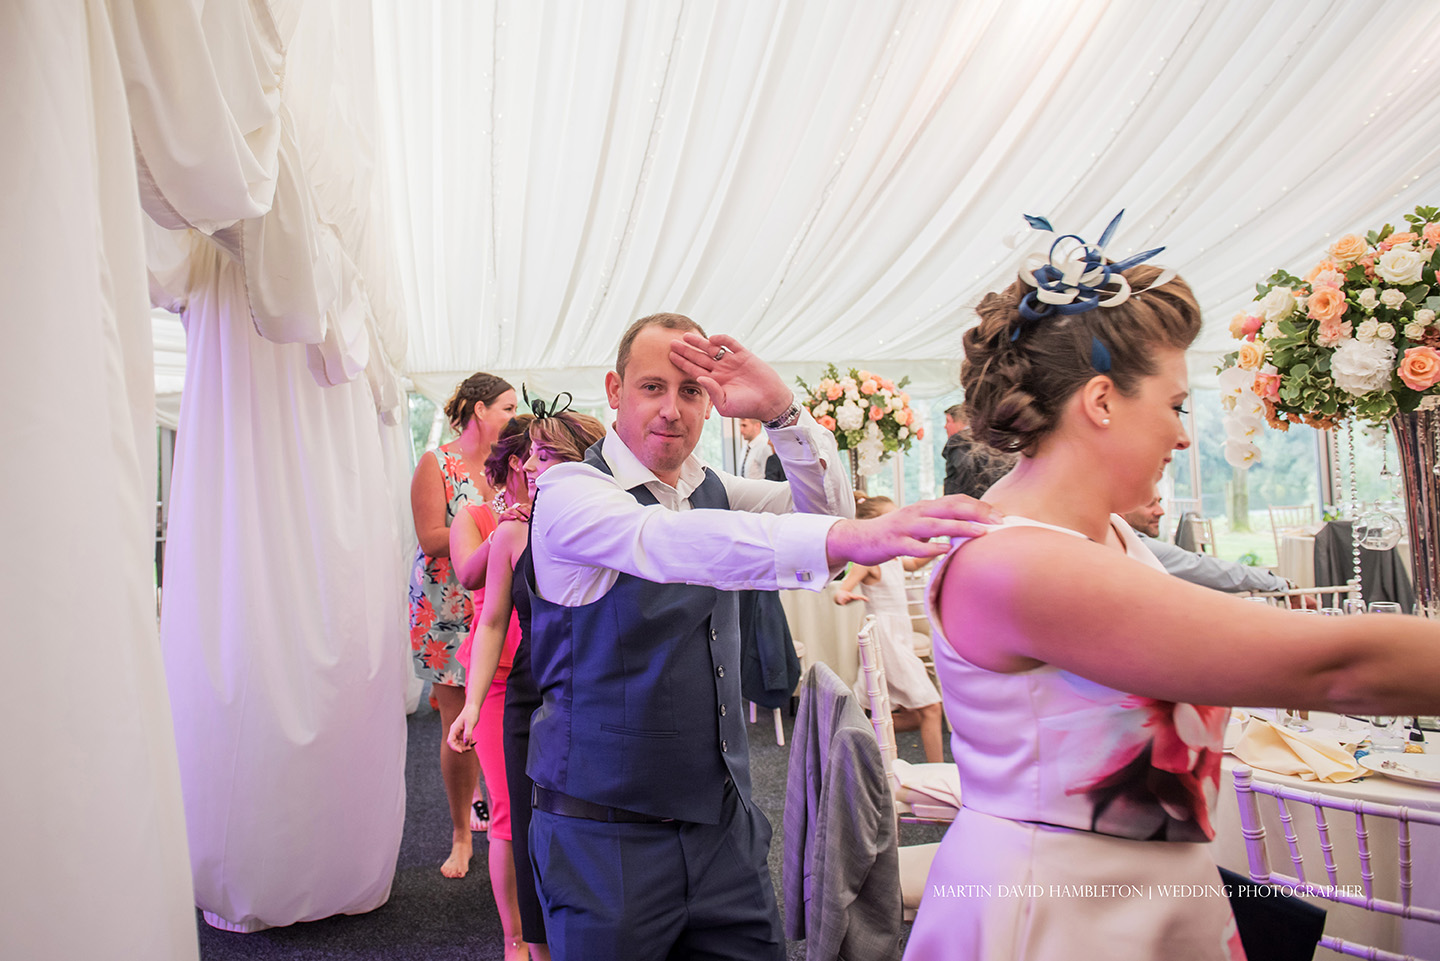 wedding guests dancing in a conga line